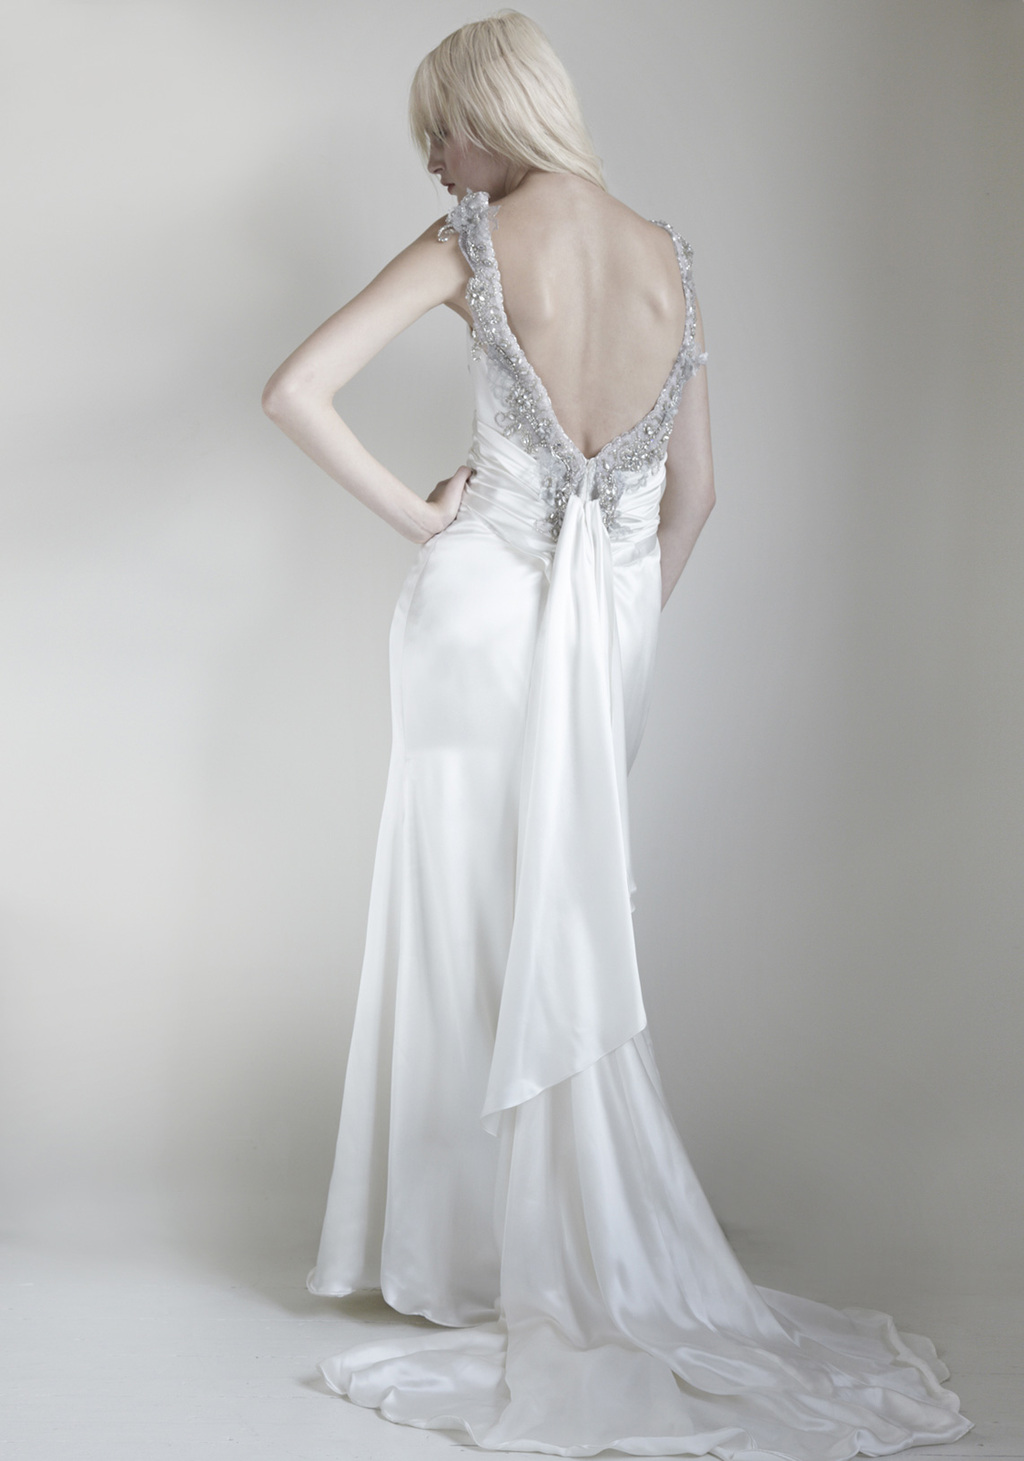 Mariana-hardwick-wedding-dress-2013-bridal-enchantress.full